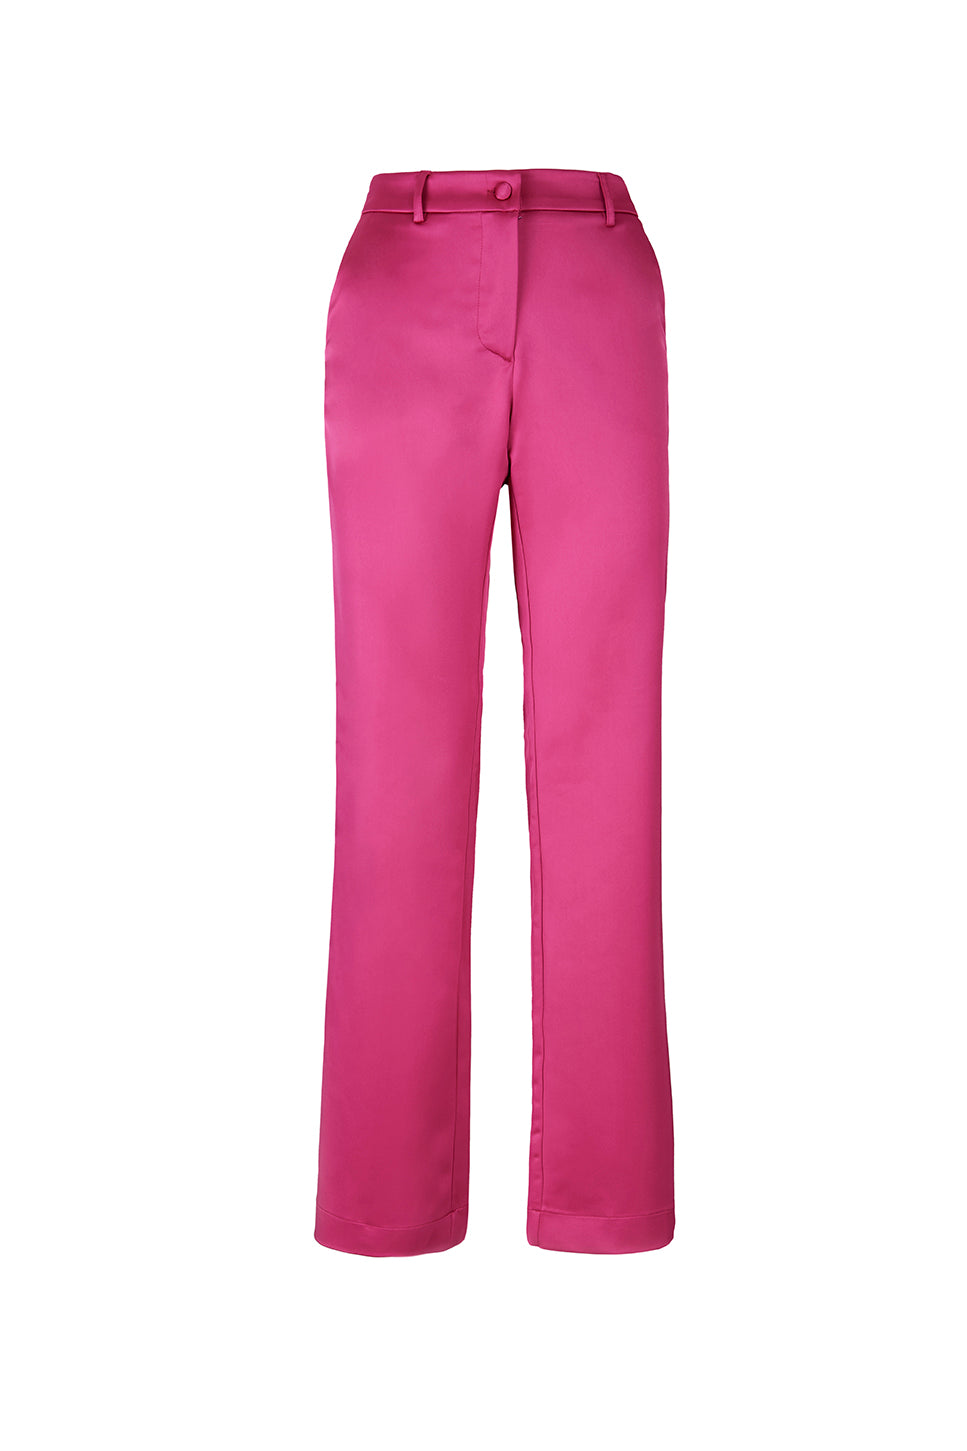 The Fuchsia Satin Lover Pants